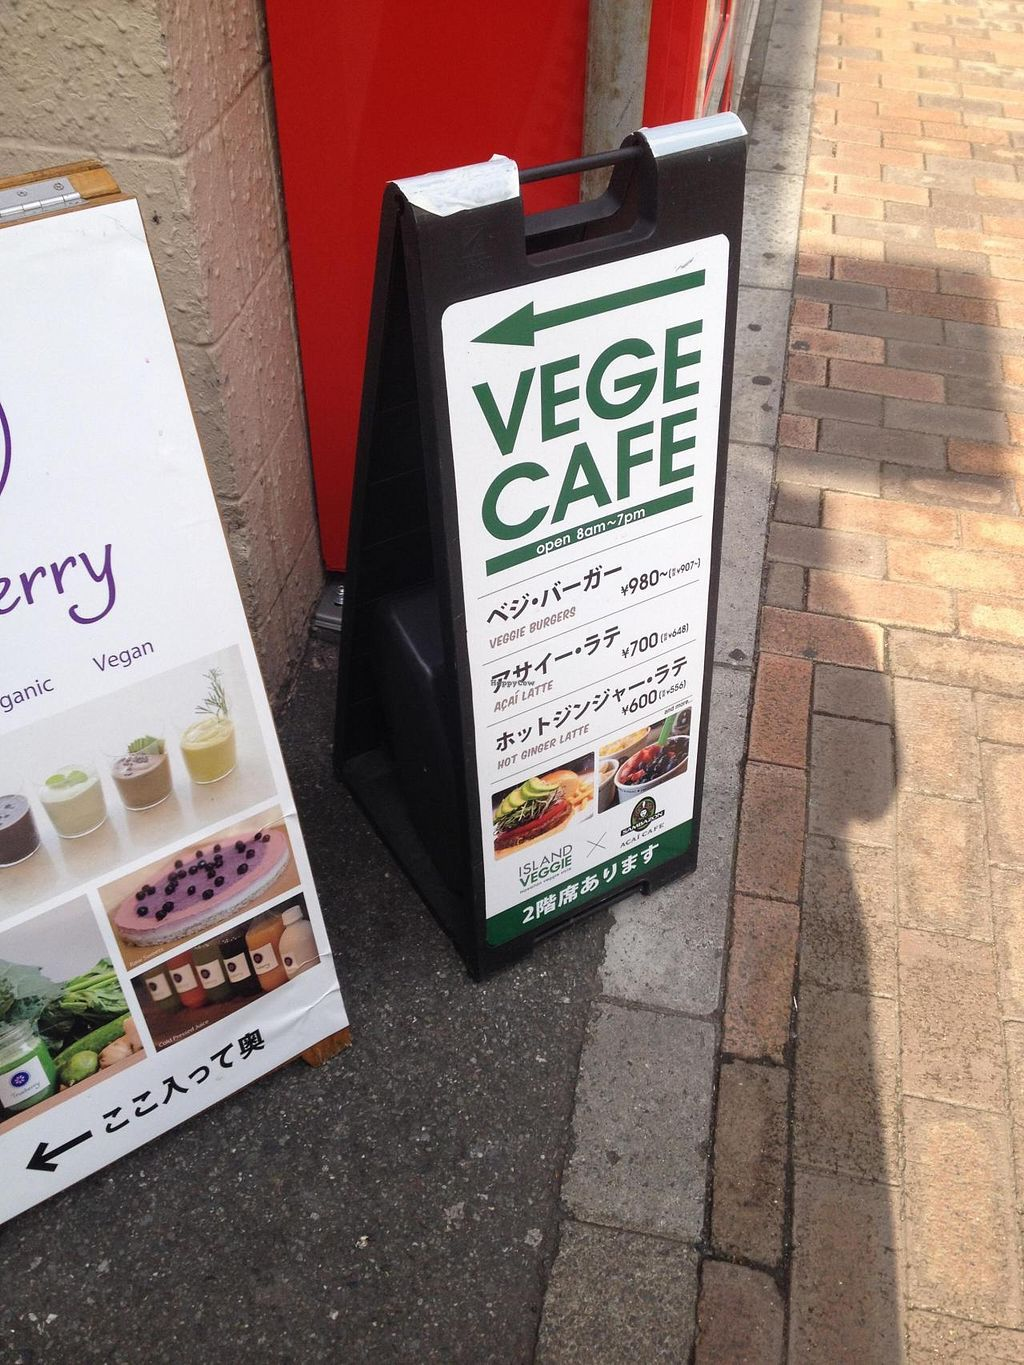 """Photo of CLOSED: Acai Cafe - Island Veggie  by <a href=""""/members/profile/Kimxula"""">Kimxula</a> <br/>sign <br/> June 1, 2015  - <a href='/contact/abuse/image/34446/104334'>Report</a>"""